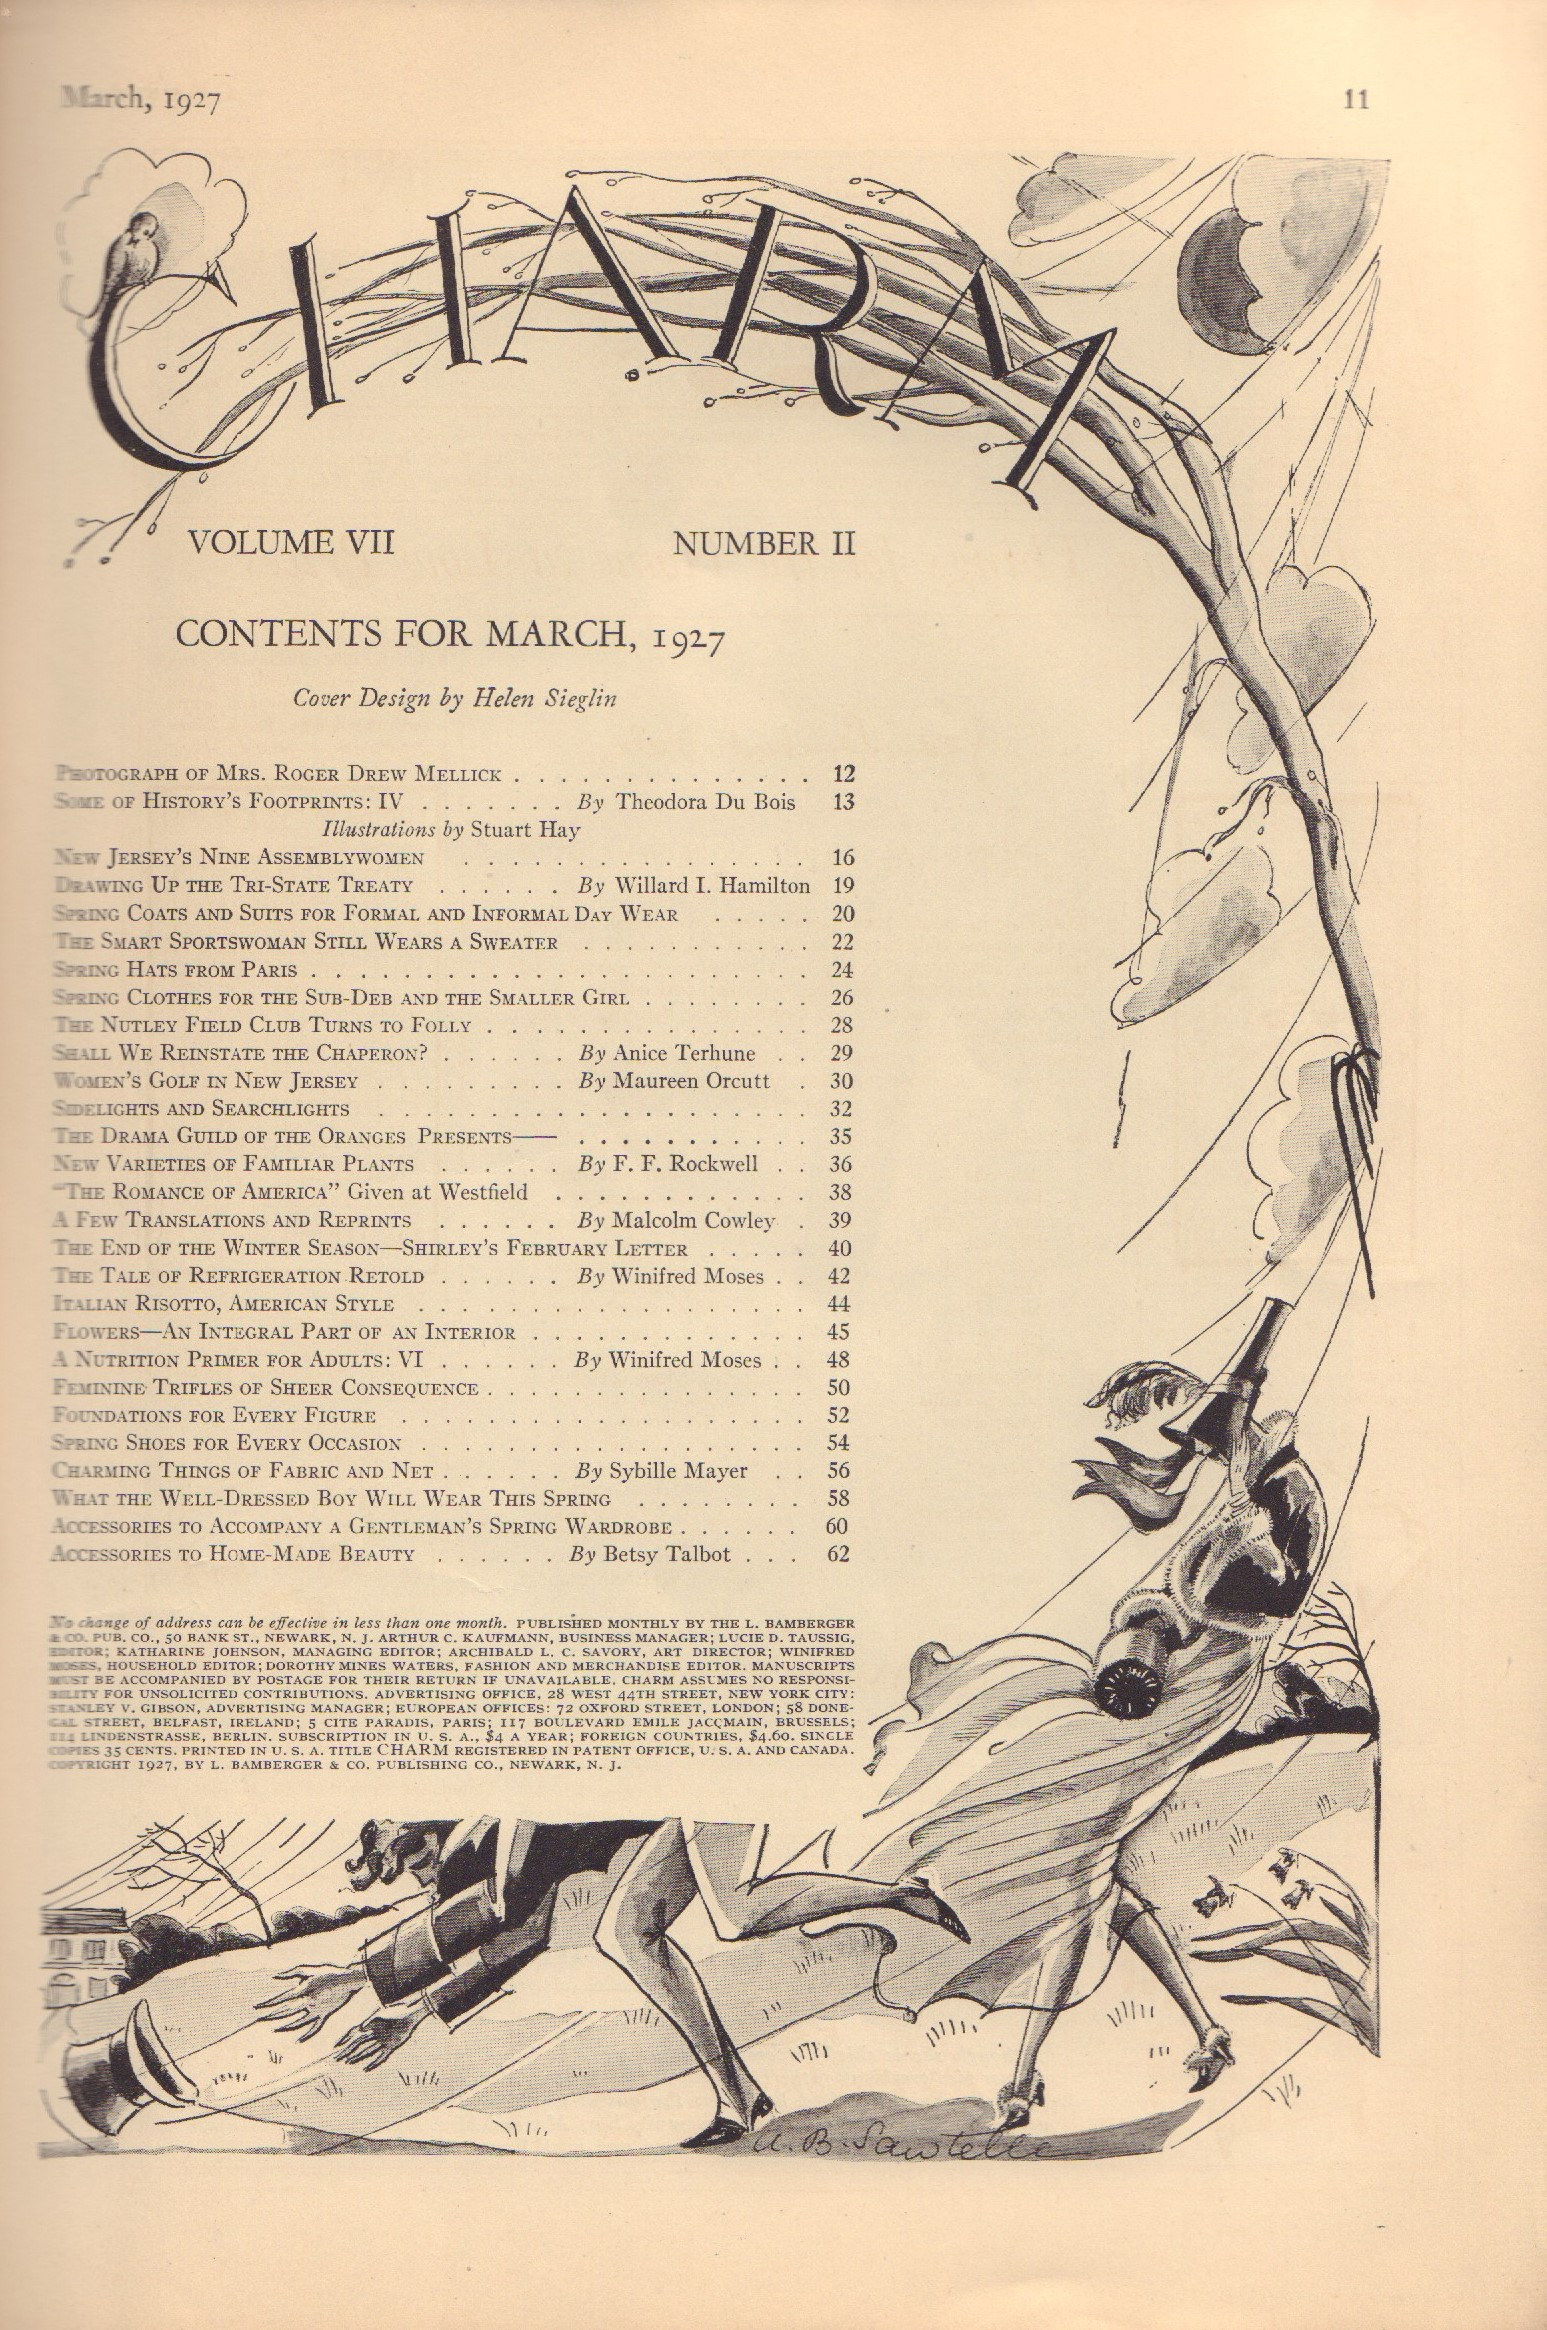 Image for Charm Volume VII, Number II - March 1927